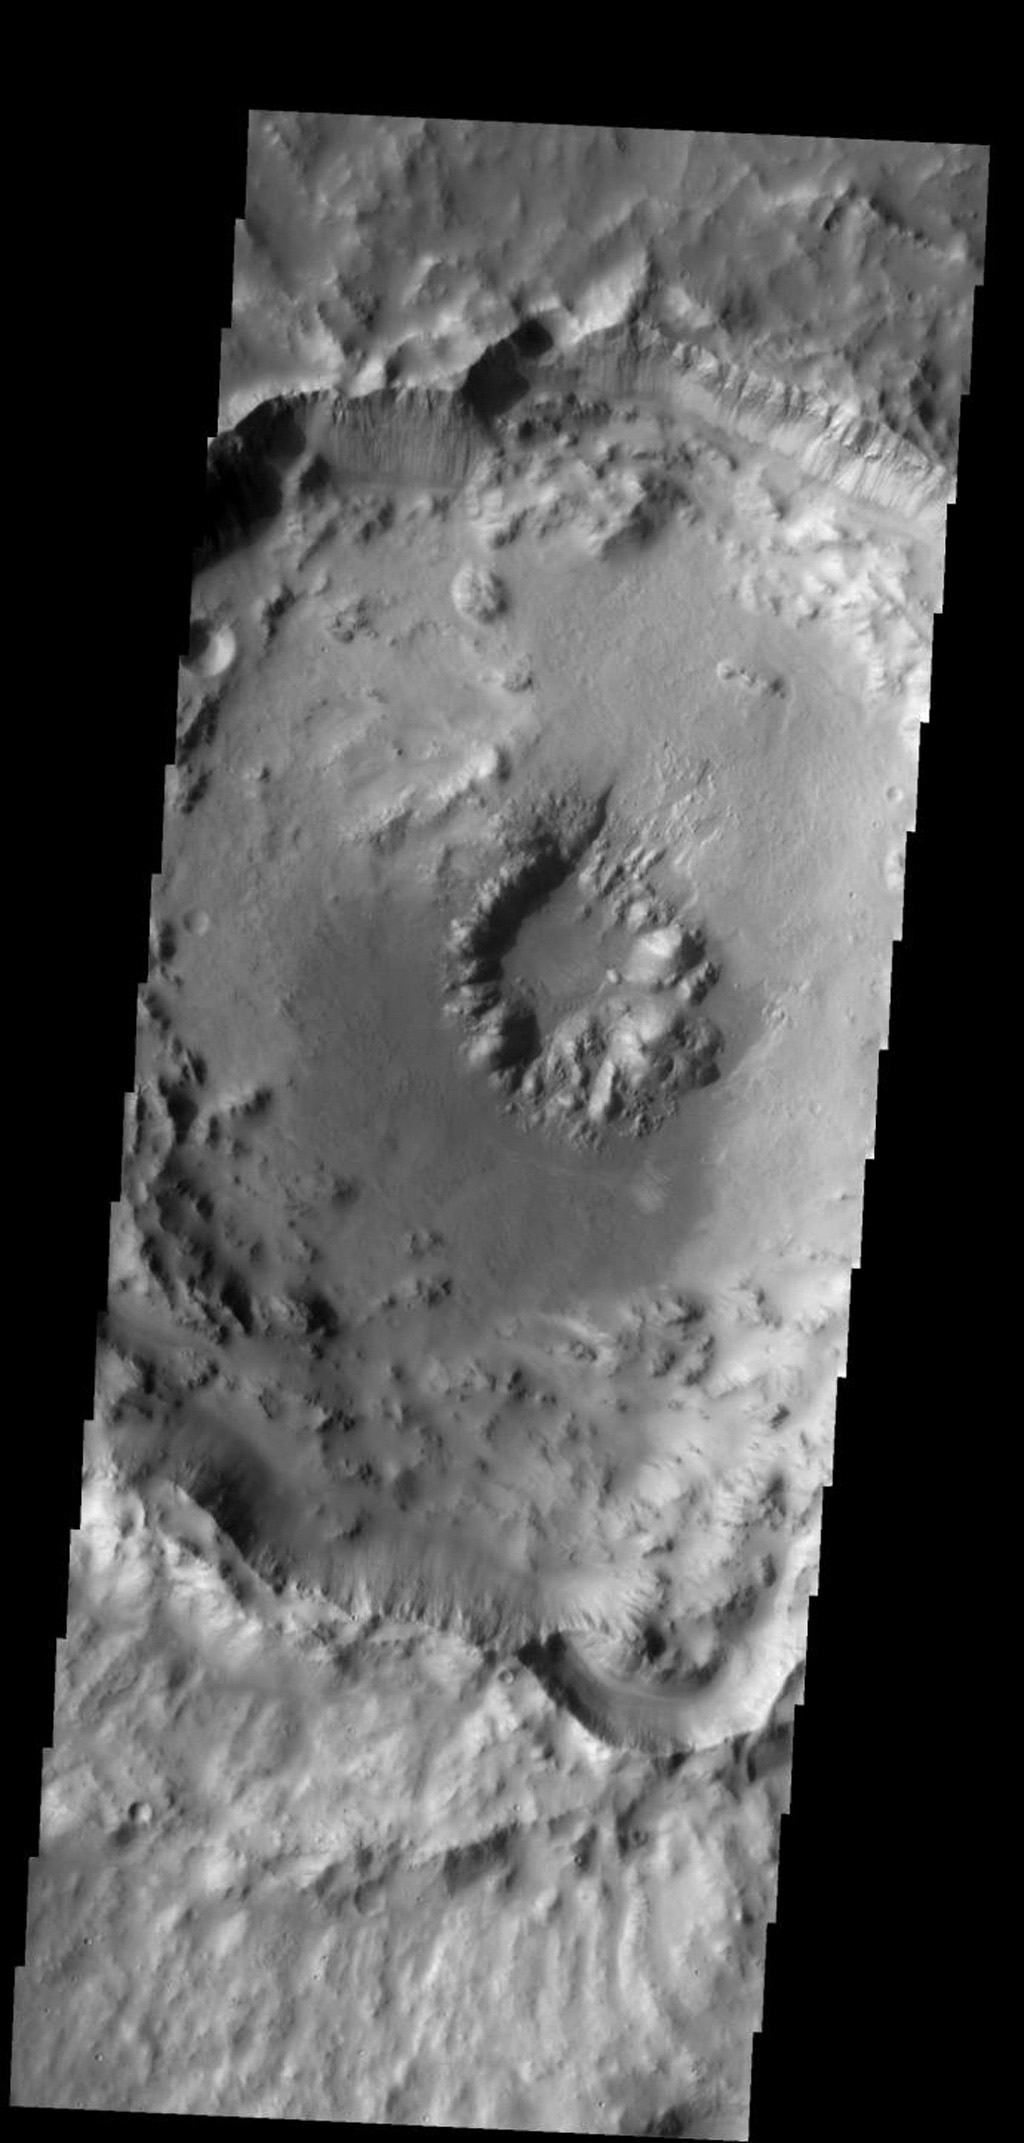 This crater with a central pit is located in Arabia Terra on Mars as seen by NASA's Mars Odyssey spacecraft.